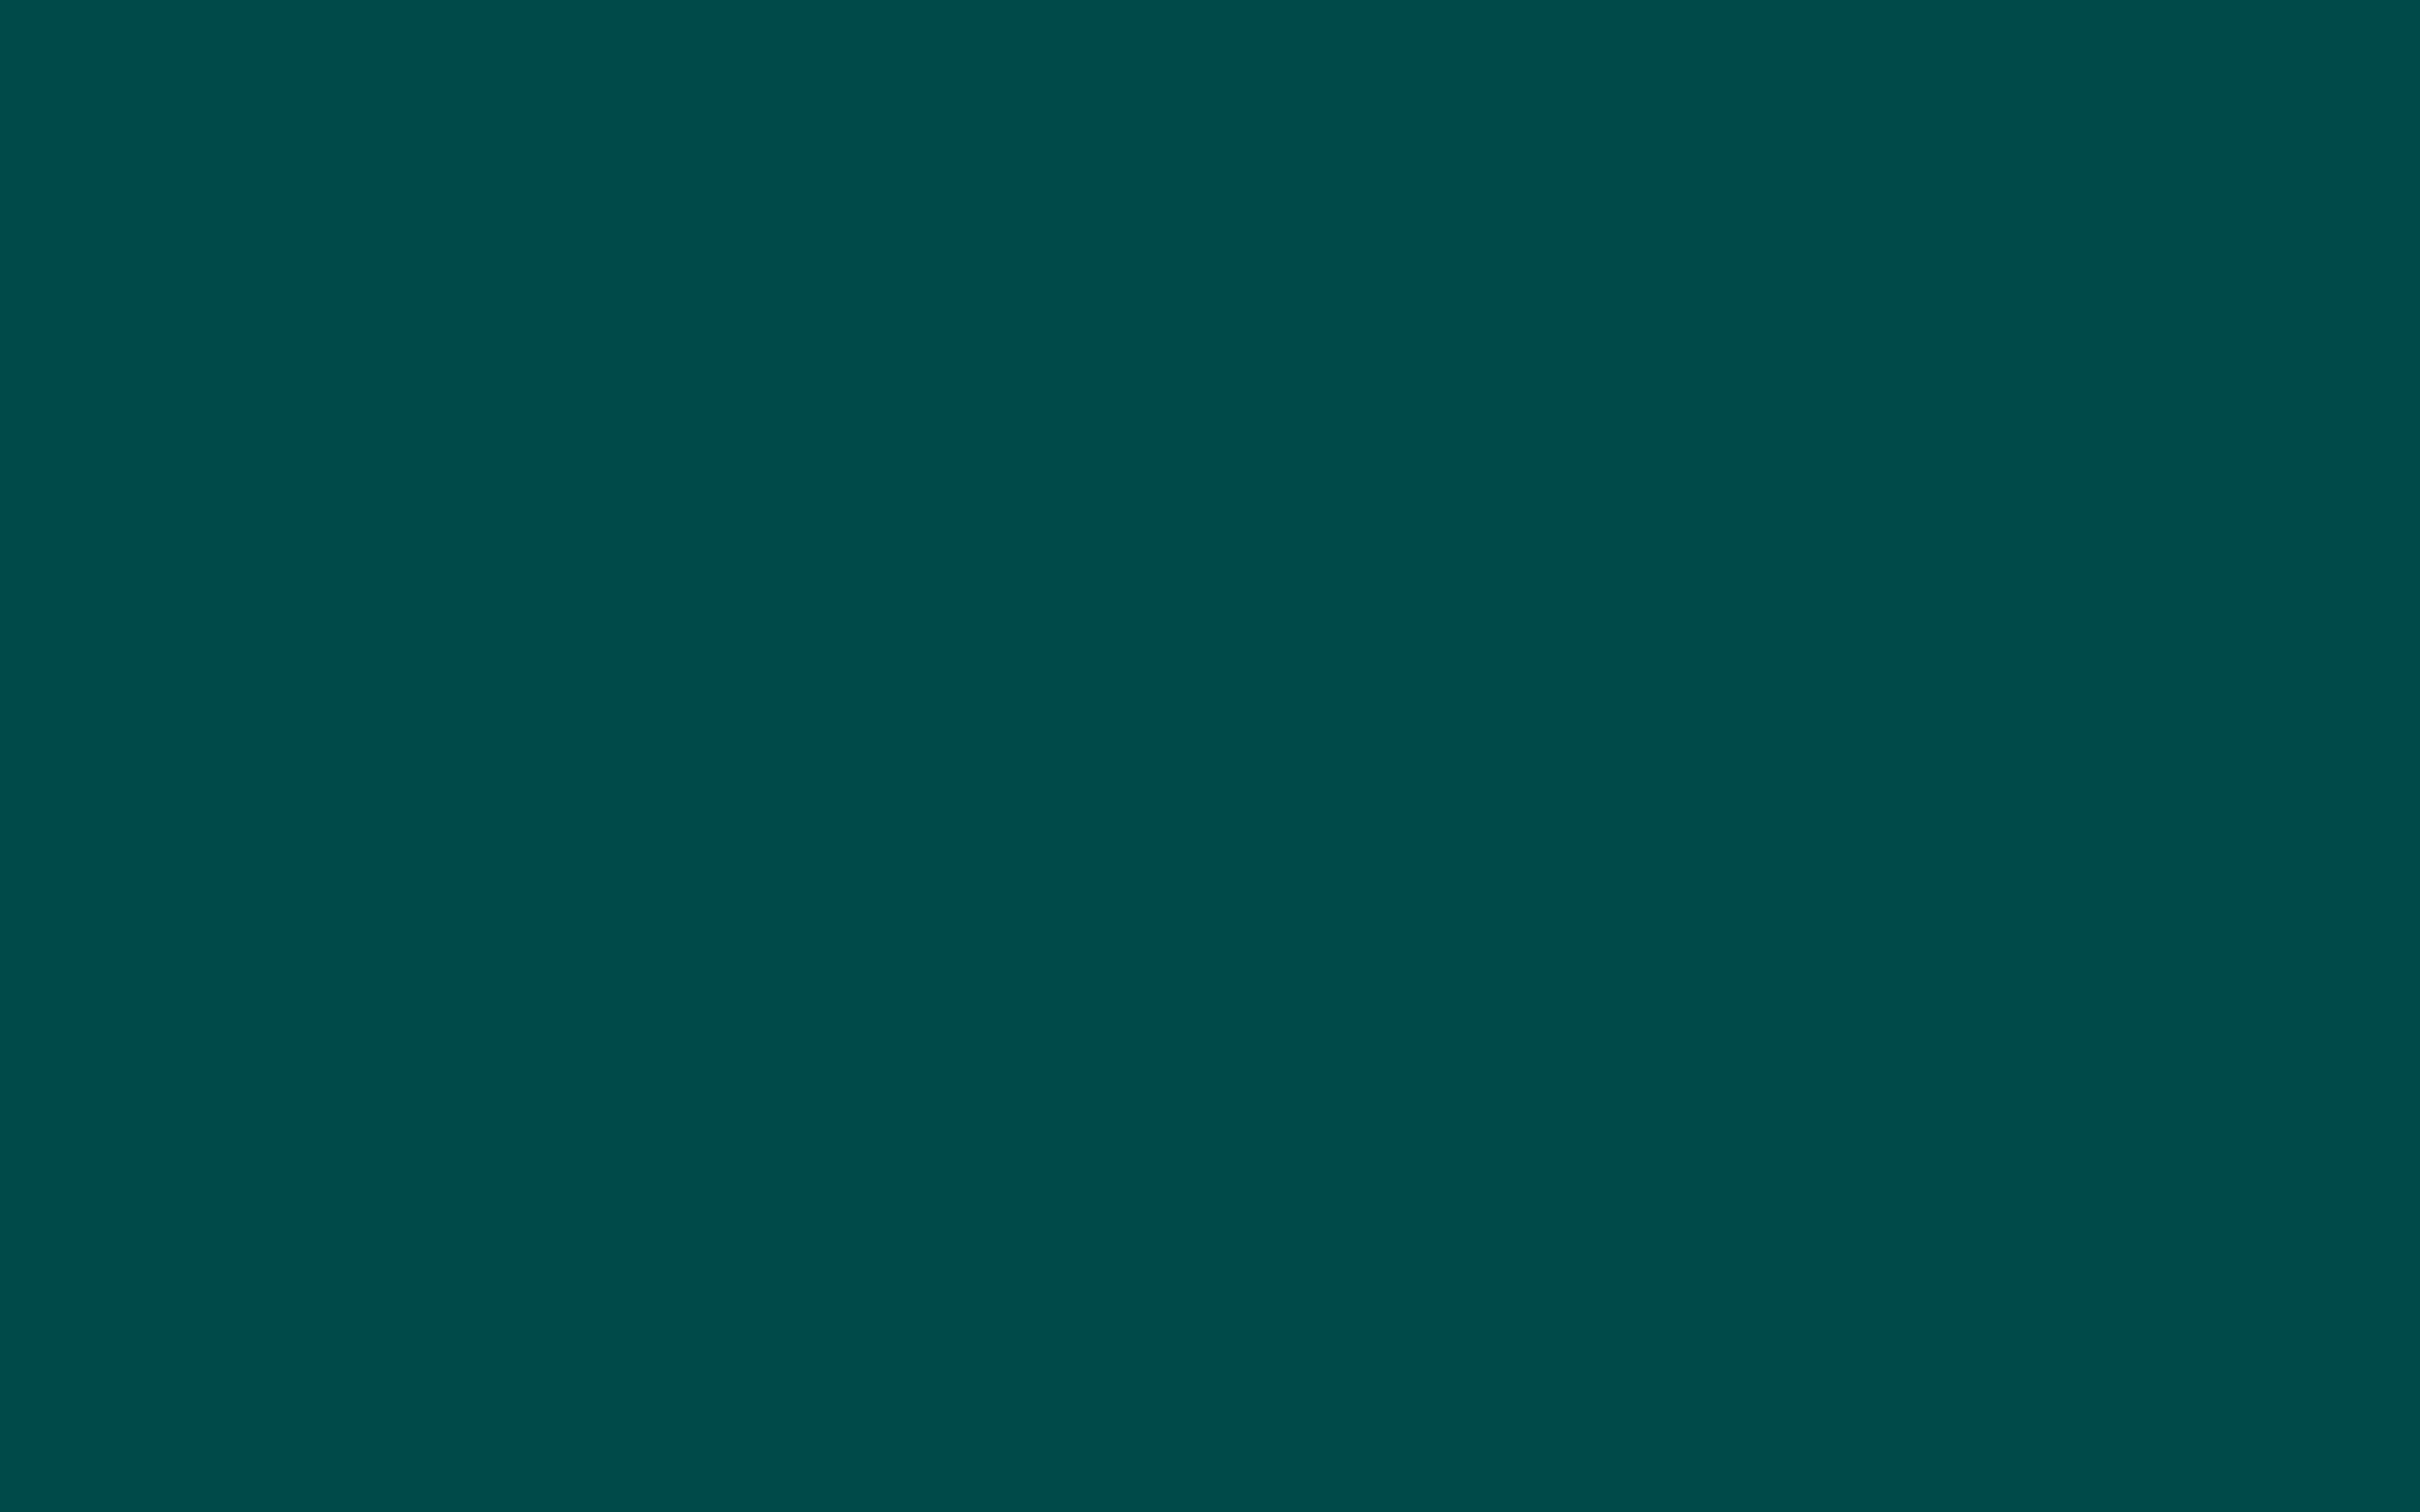 2560x1600 Deep Jungle Green Solid Color Background